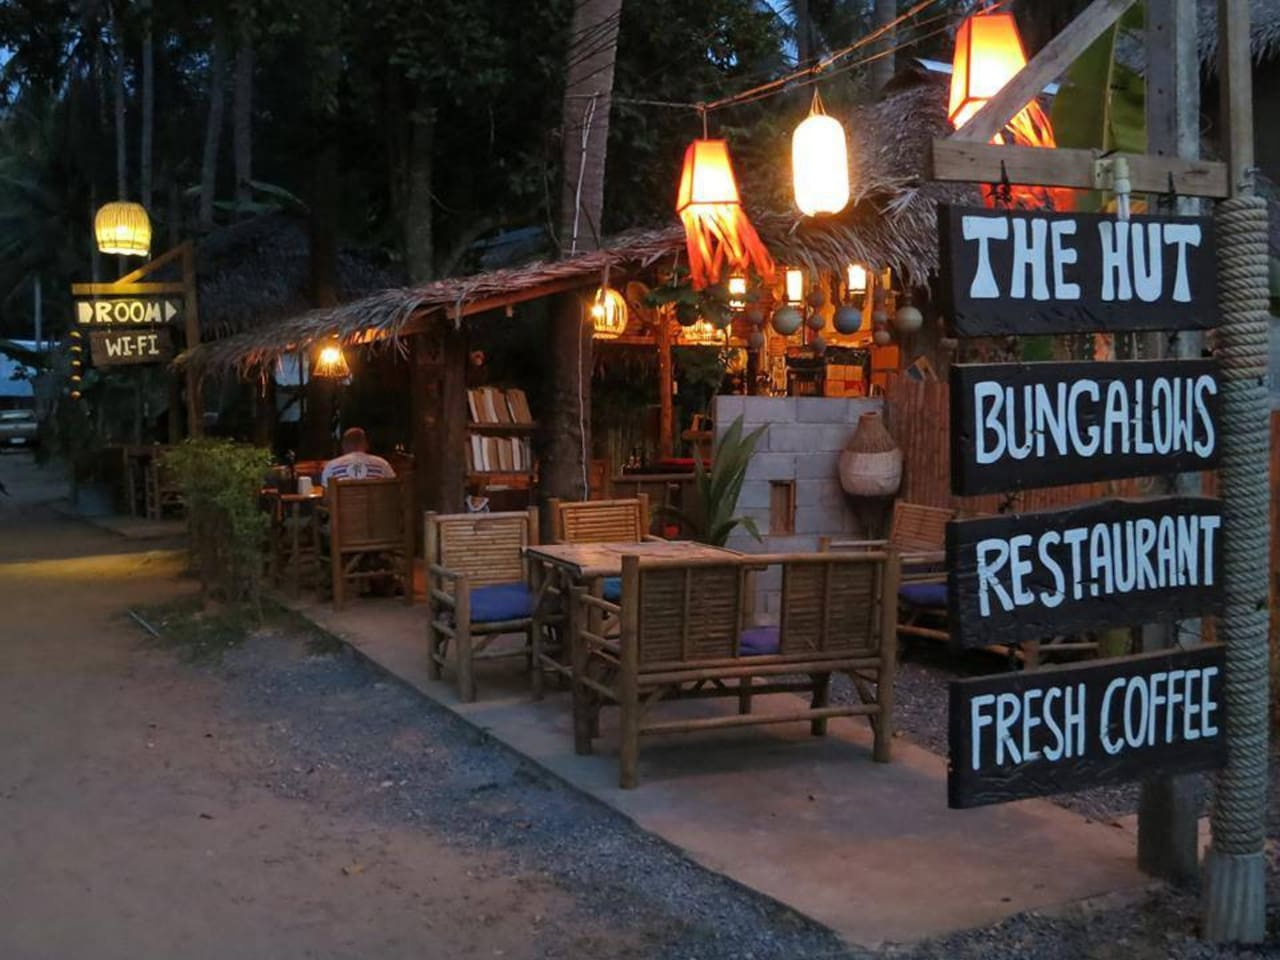 The Hut Bungalows and Restaurant - Klong Nin Beach, Ko Lanta. Clean, budget rooms, cheap and tasty food. We have bikes for rent, laundry service and friendly staff.